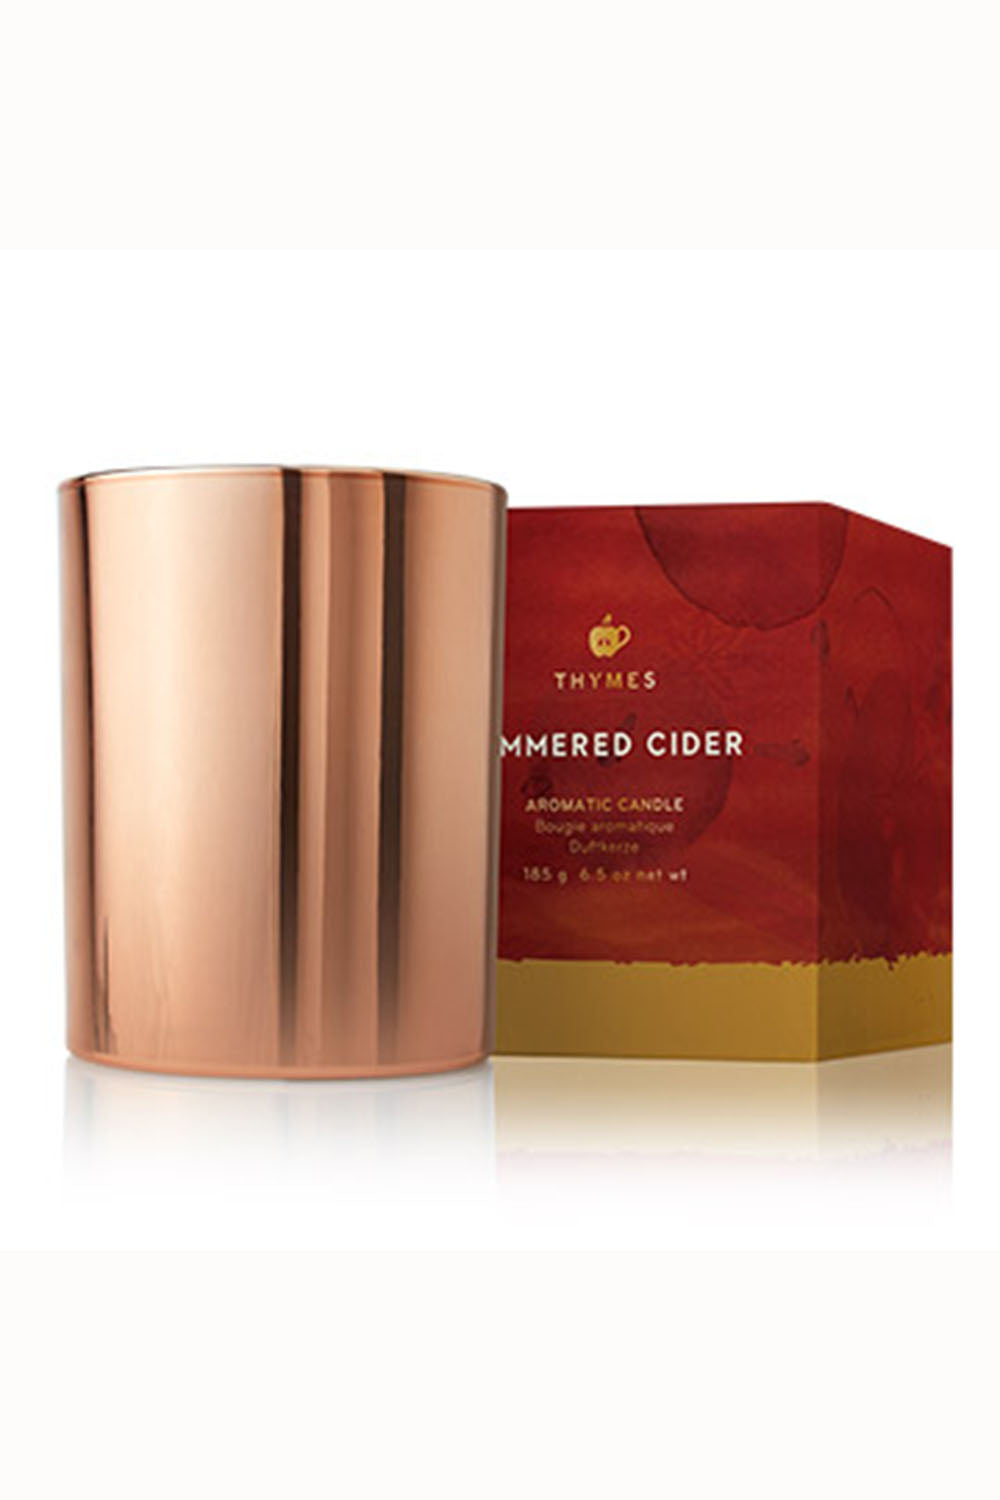 Simmered Cider Copper Candle in Box